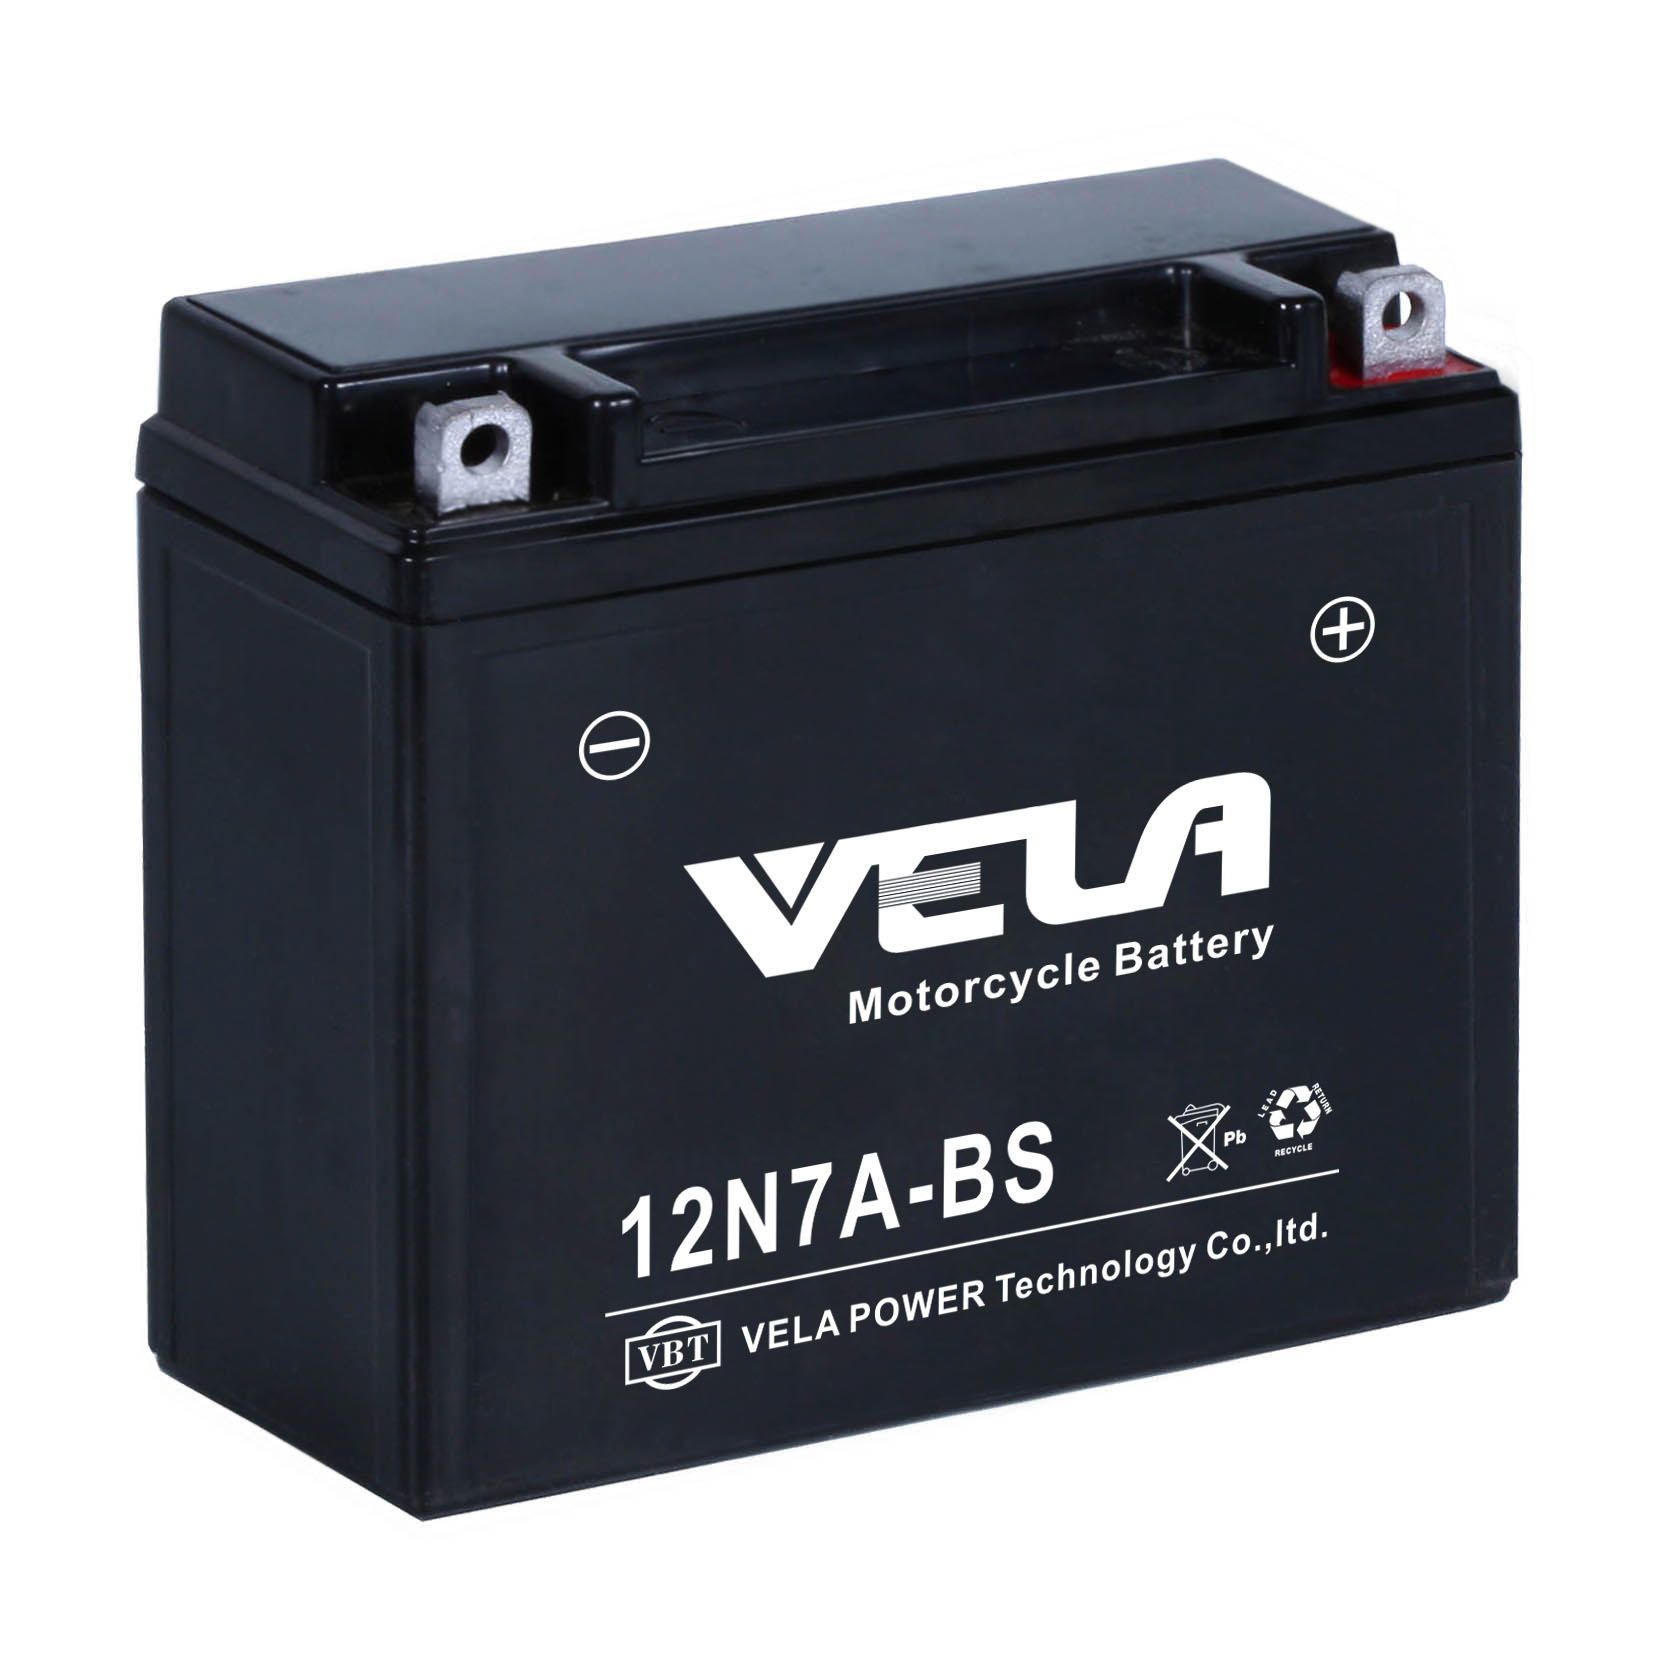 Oem High Quality Cheap Price 12N7A-BS MF Lead Acid Motorcycle Battery Factory Price-VELA